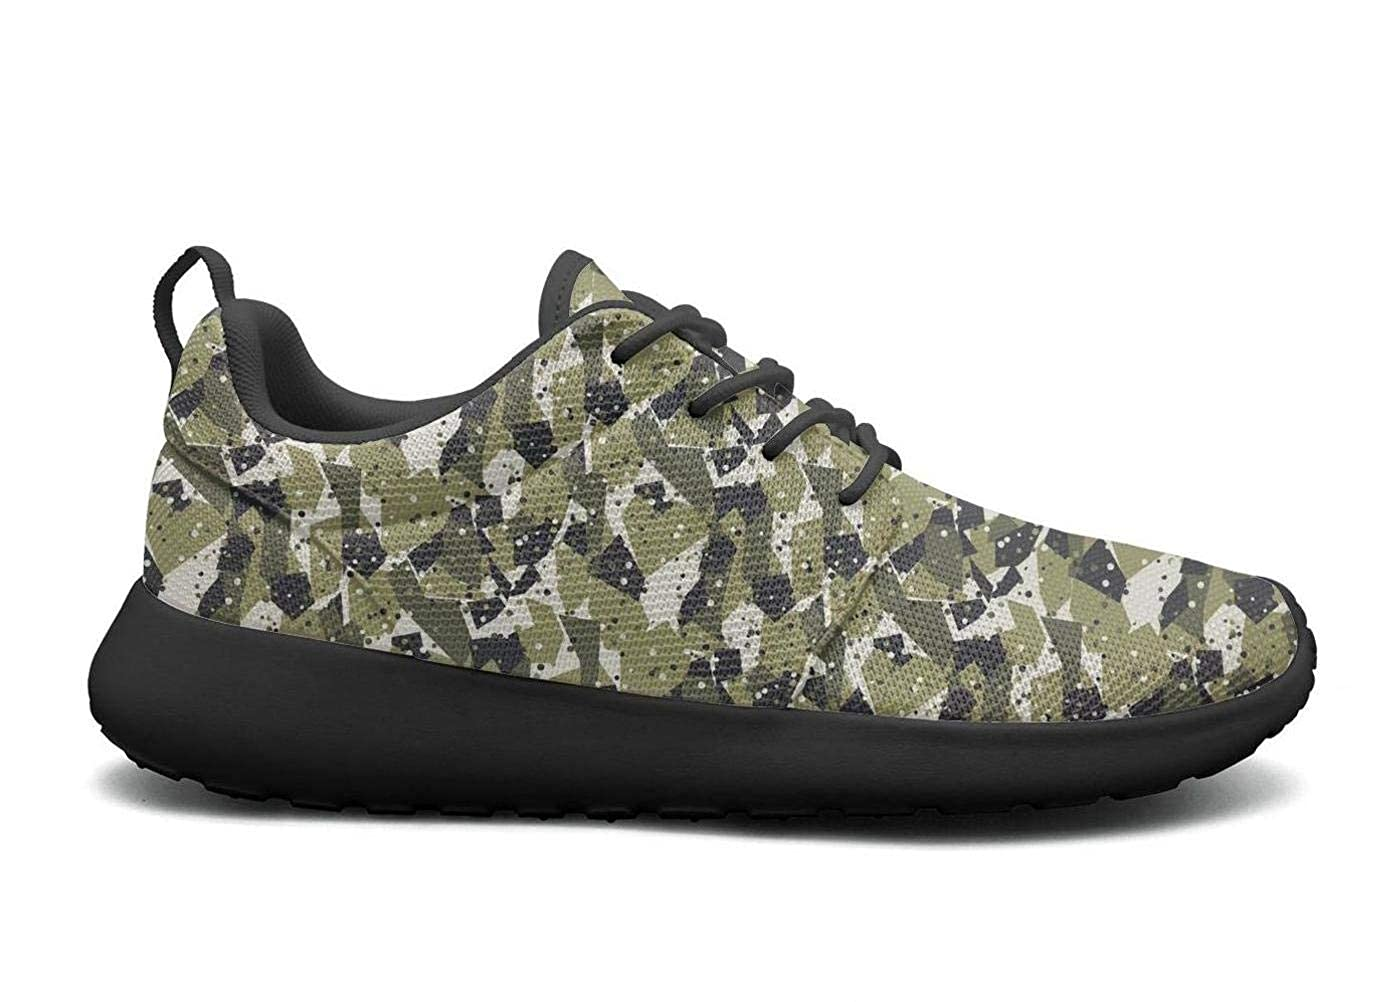 Wuixkas Camo Camouflage Geometric Womens Lightweight Mesh Sneakers Comfortable Boat Shoes